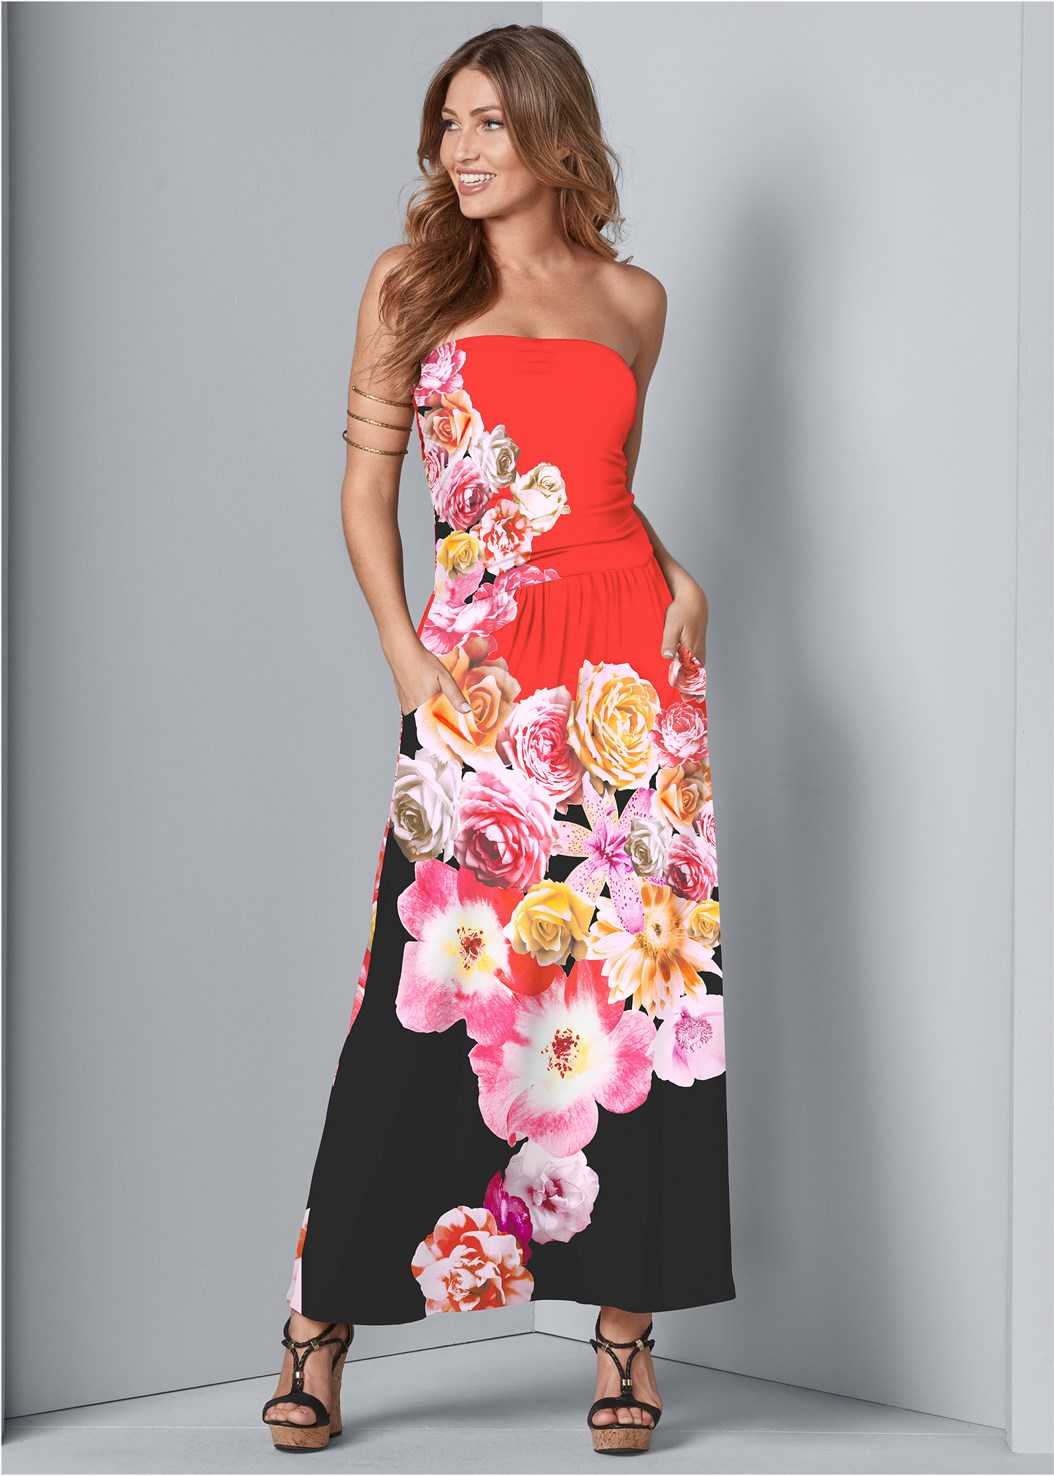 Strapless Print Maxi Dress,Strapless Bra With Geo Lace,Double Strap Cork Wedge,Hoop Earrings